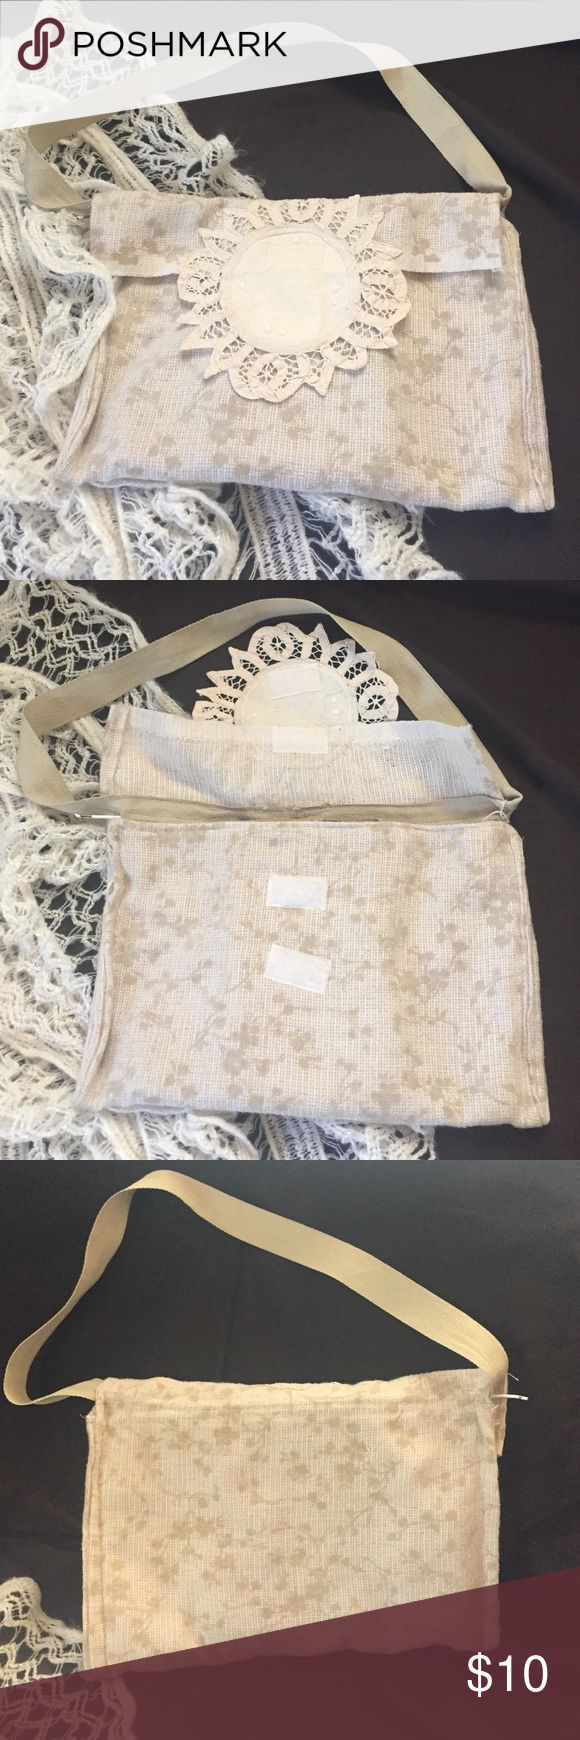 """Small envelope style purse Soft fabric small envelope style purse. Closes with Velcro and a doily. Cream and taupe. Measures 10"""" x 7"""" strap 21"""" Bags Mini Bags"""